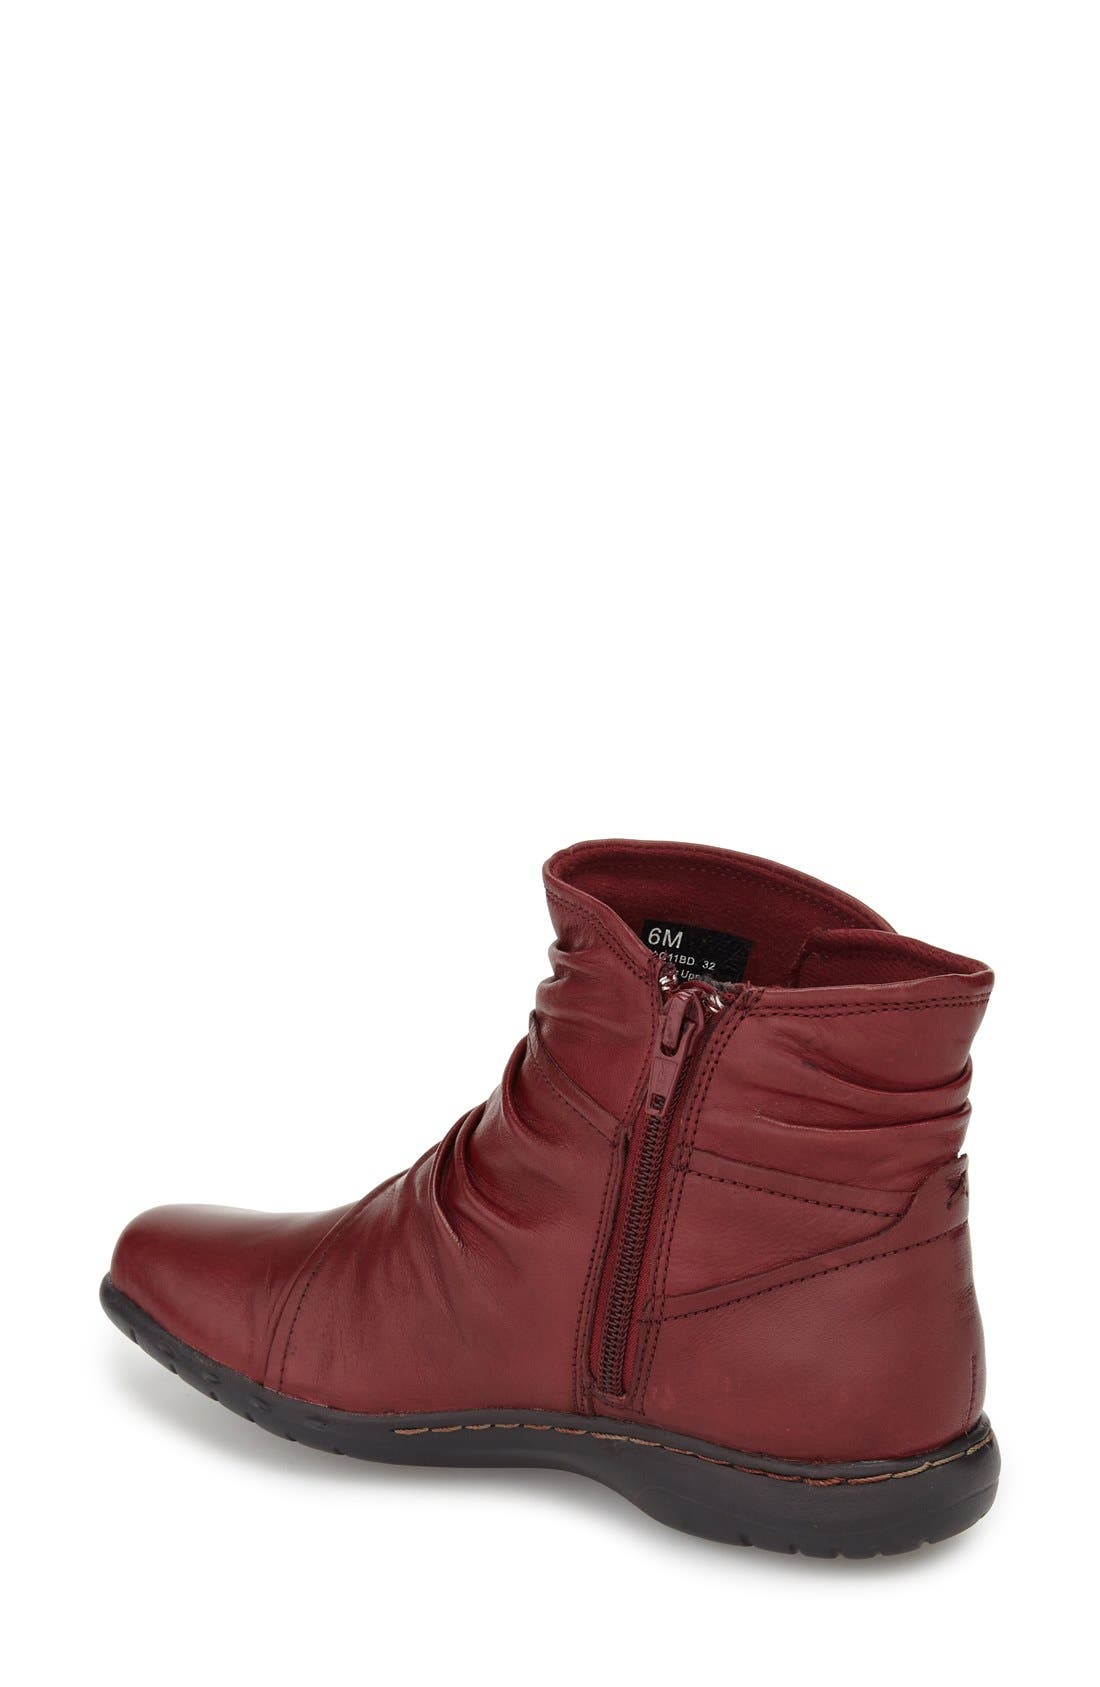 Alternate Image 2  - Rockport Cobb Hill 'Pandora' Boot